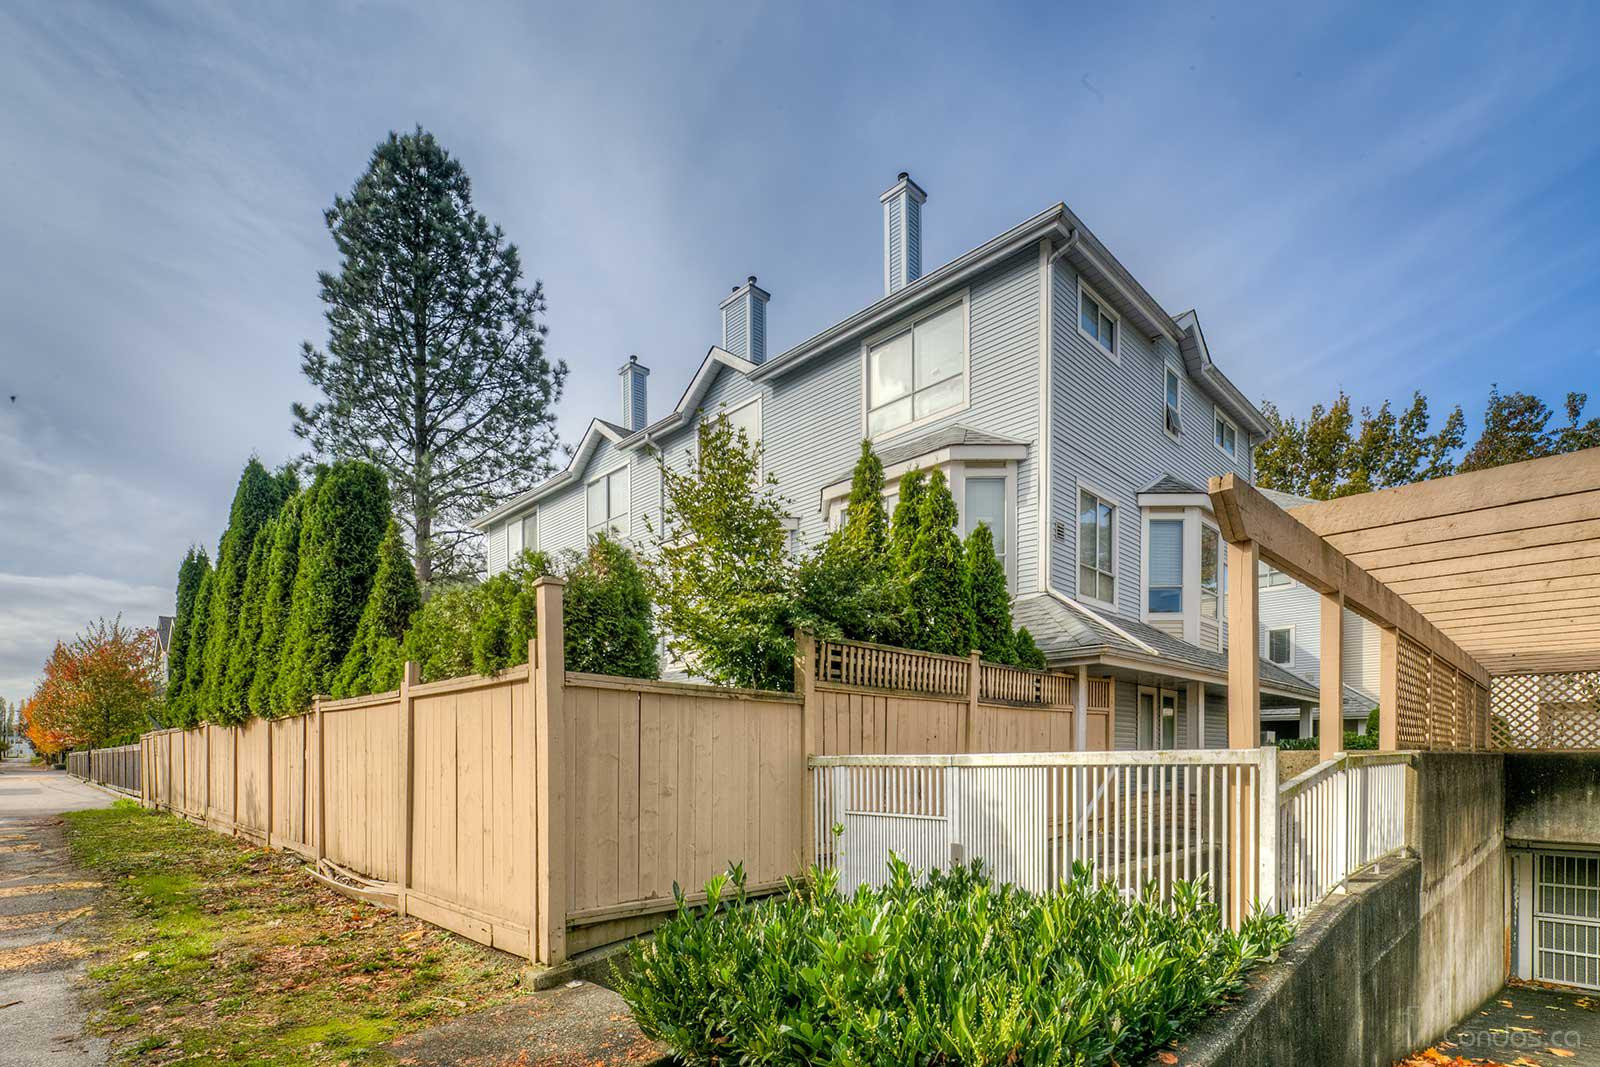 Kensington at 7184 Stride Ave, Burnaby 0